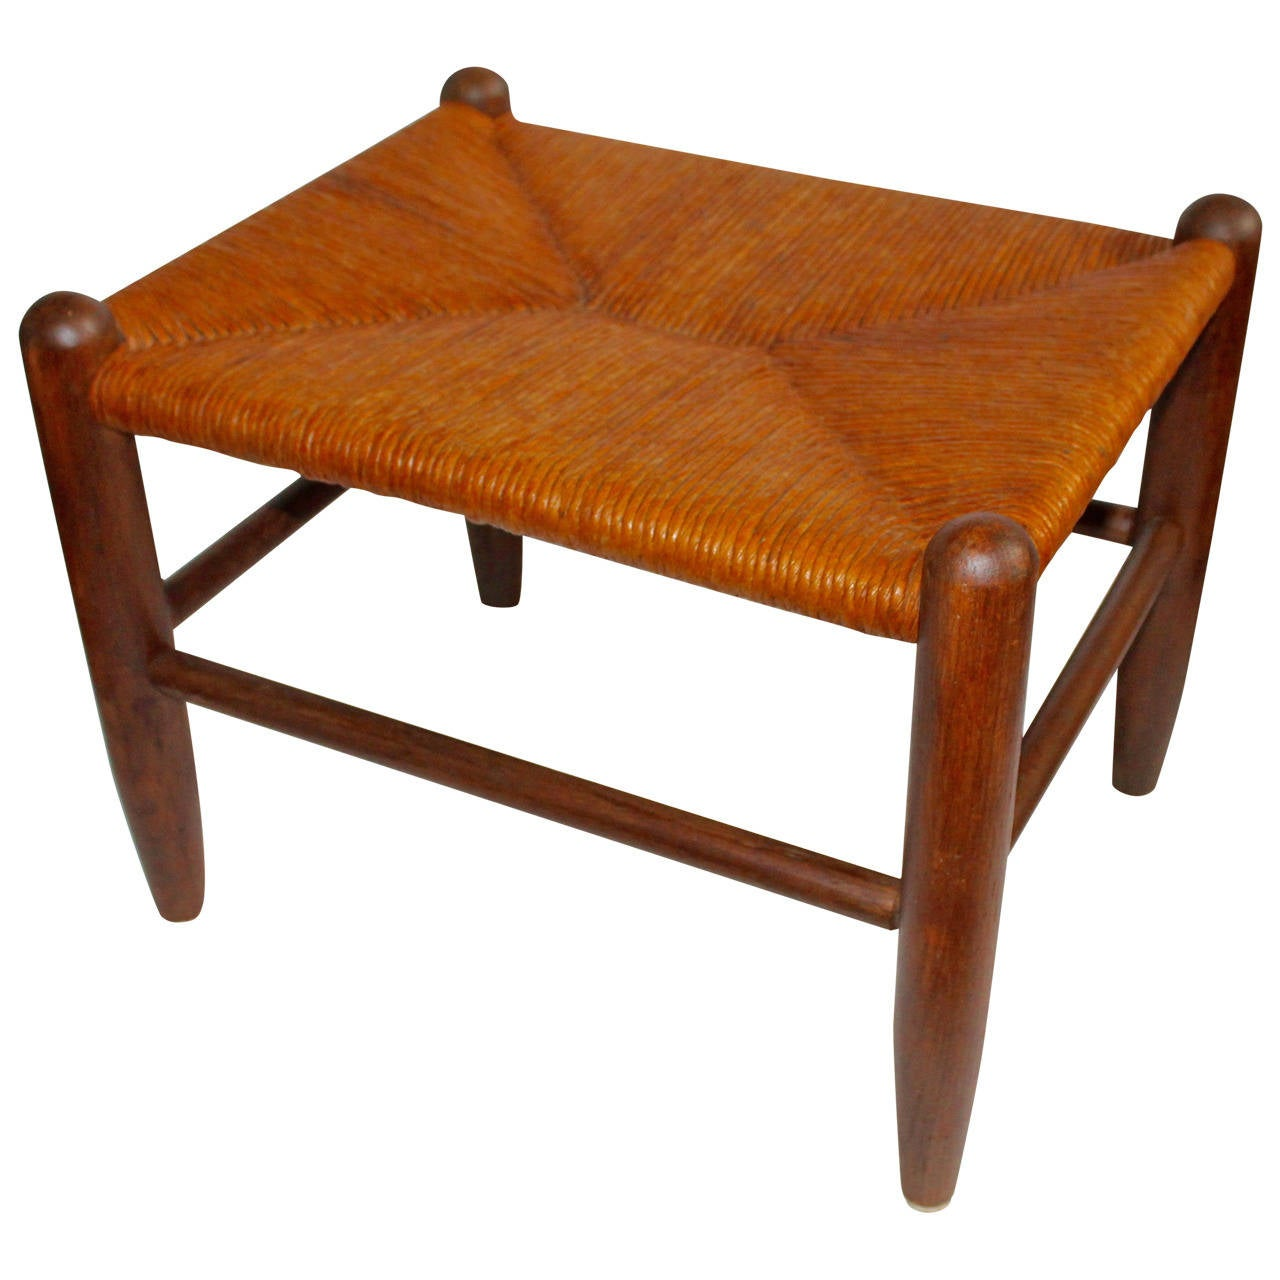 Early 20th Century Handmade Stool With Woven Rattan Seat